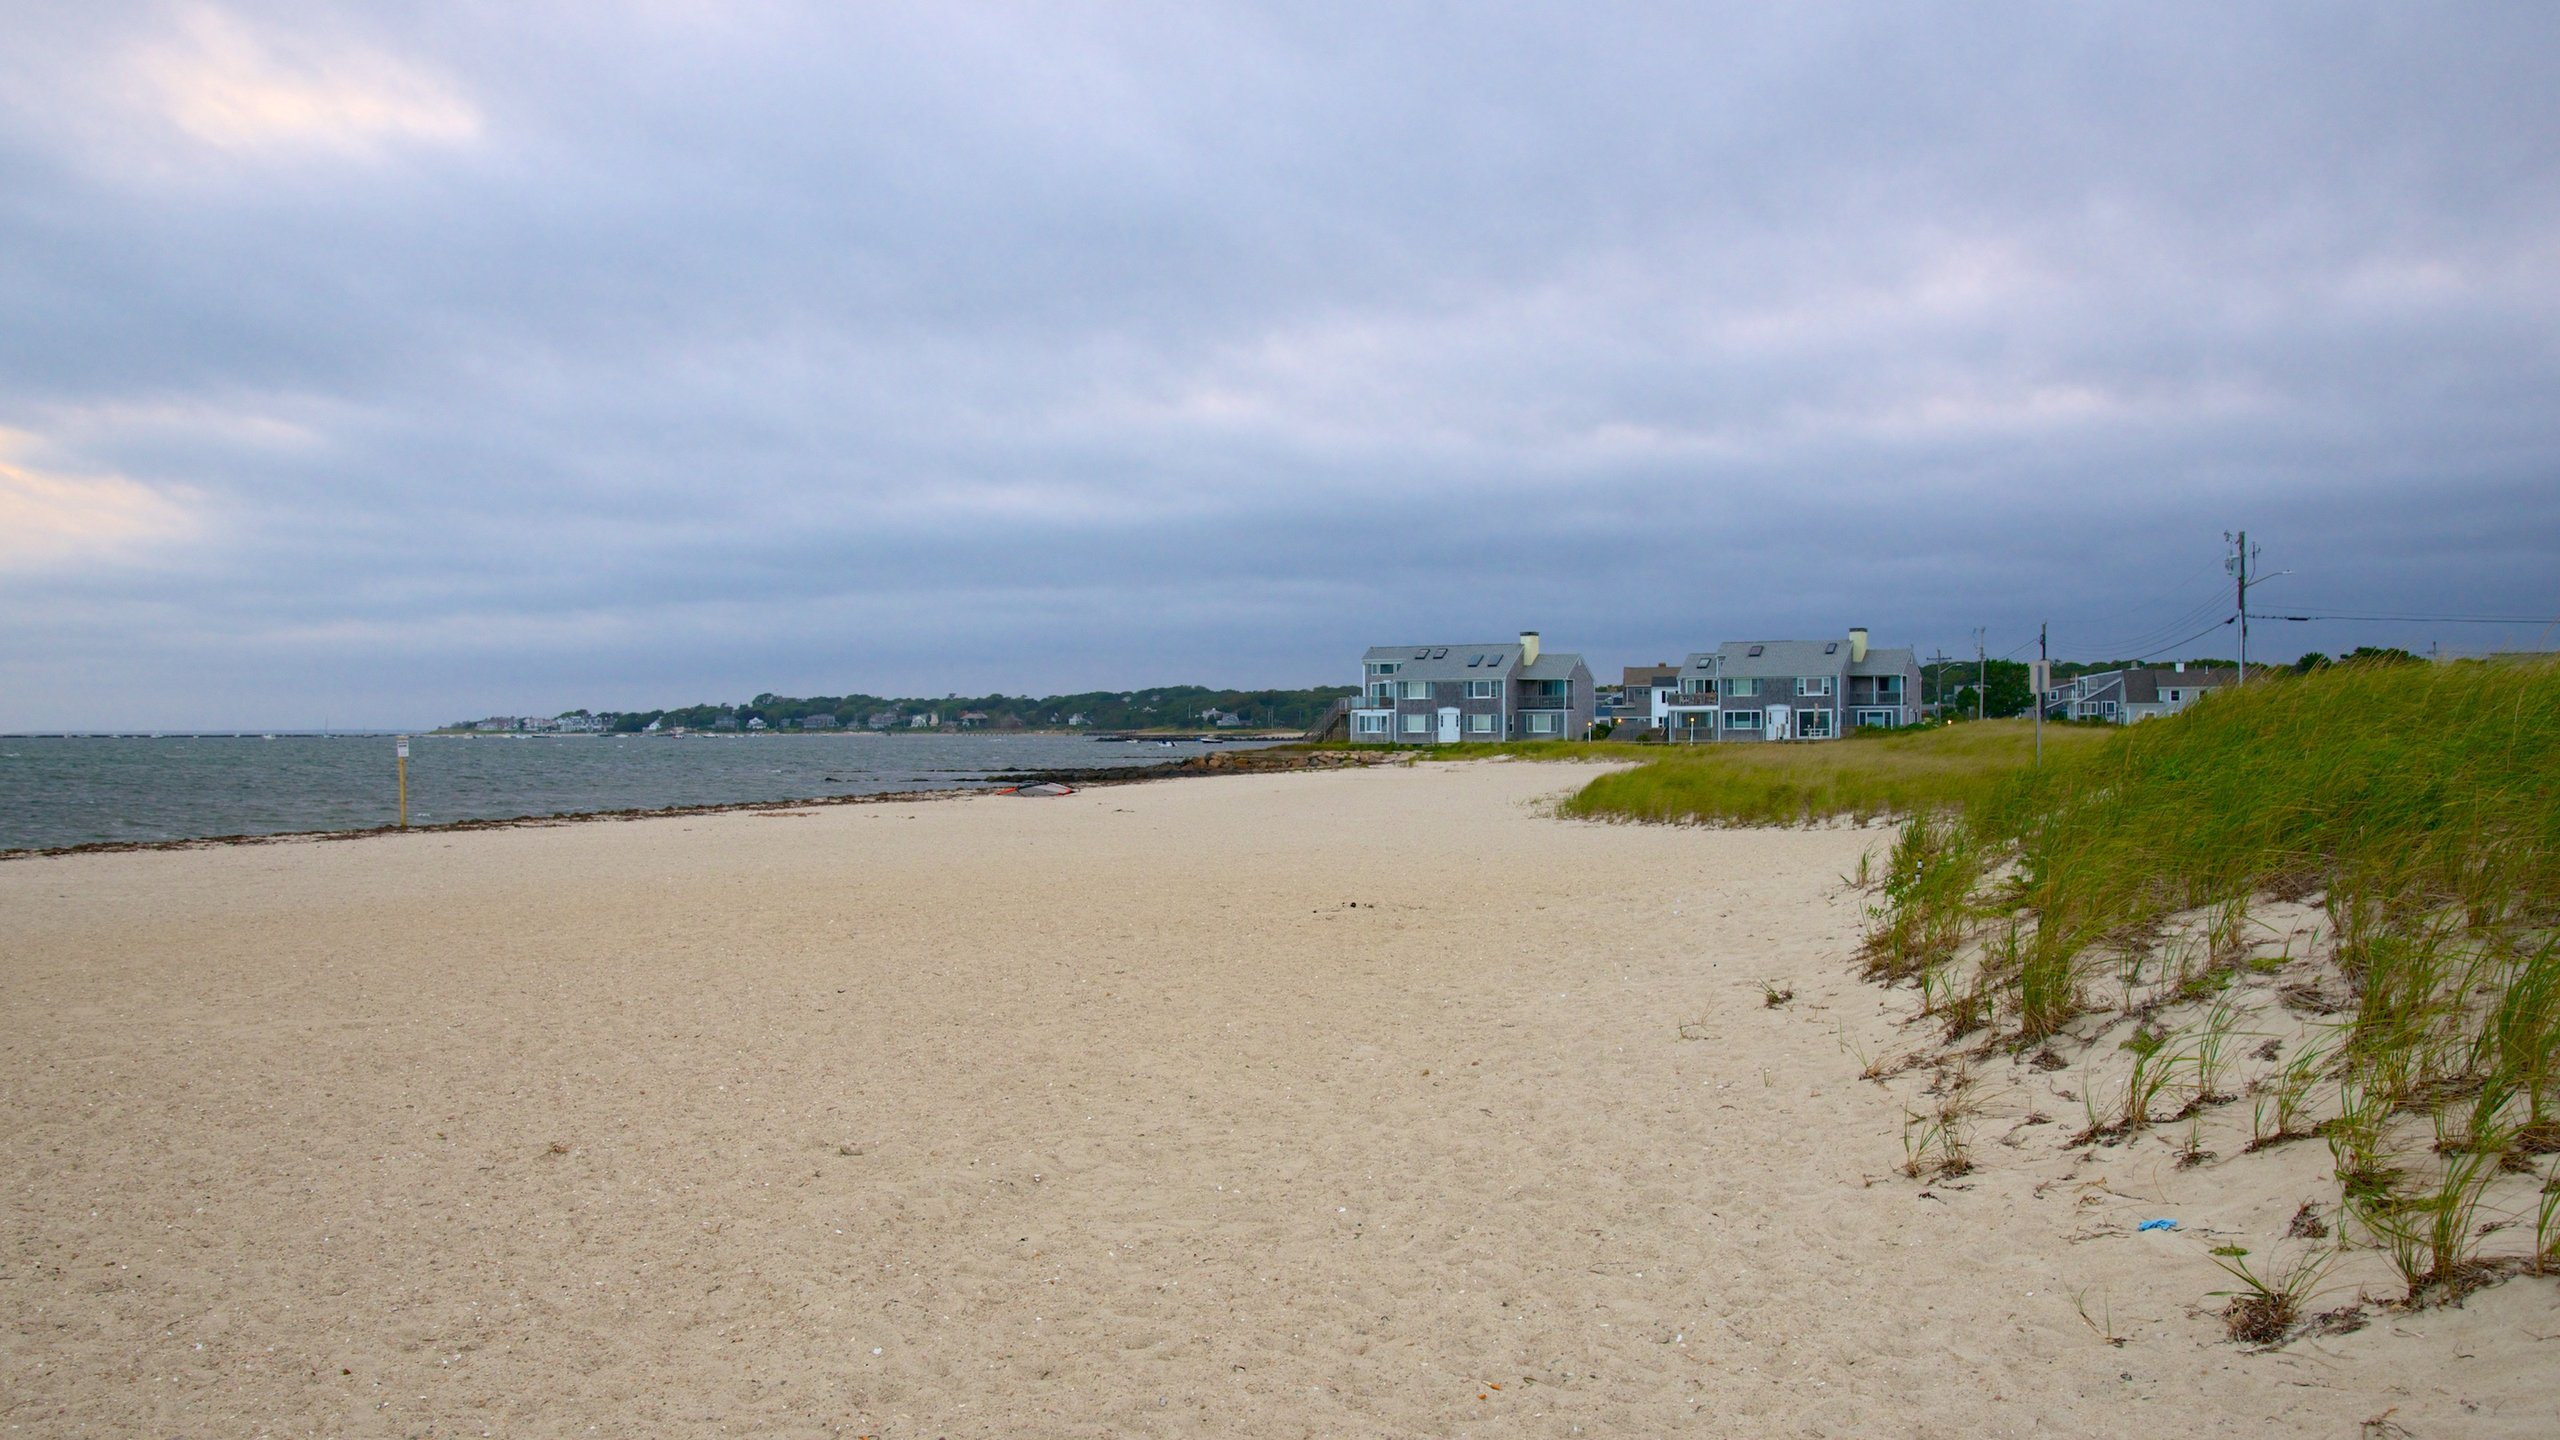 10 Best Beach Hotels In Hyannis Ma For